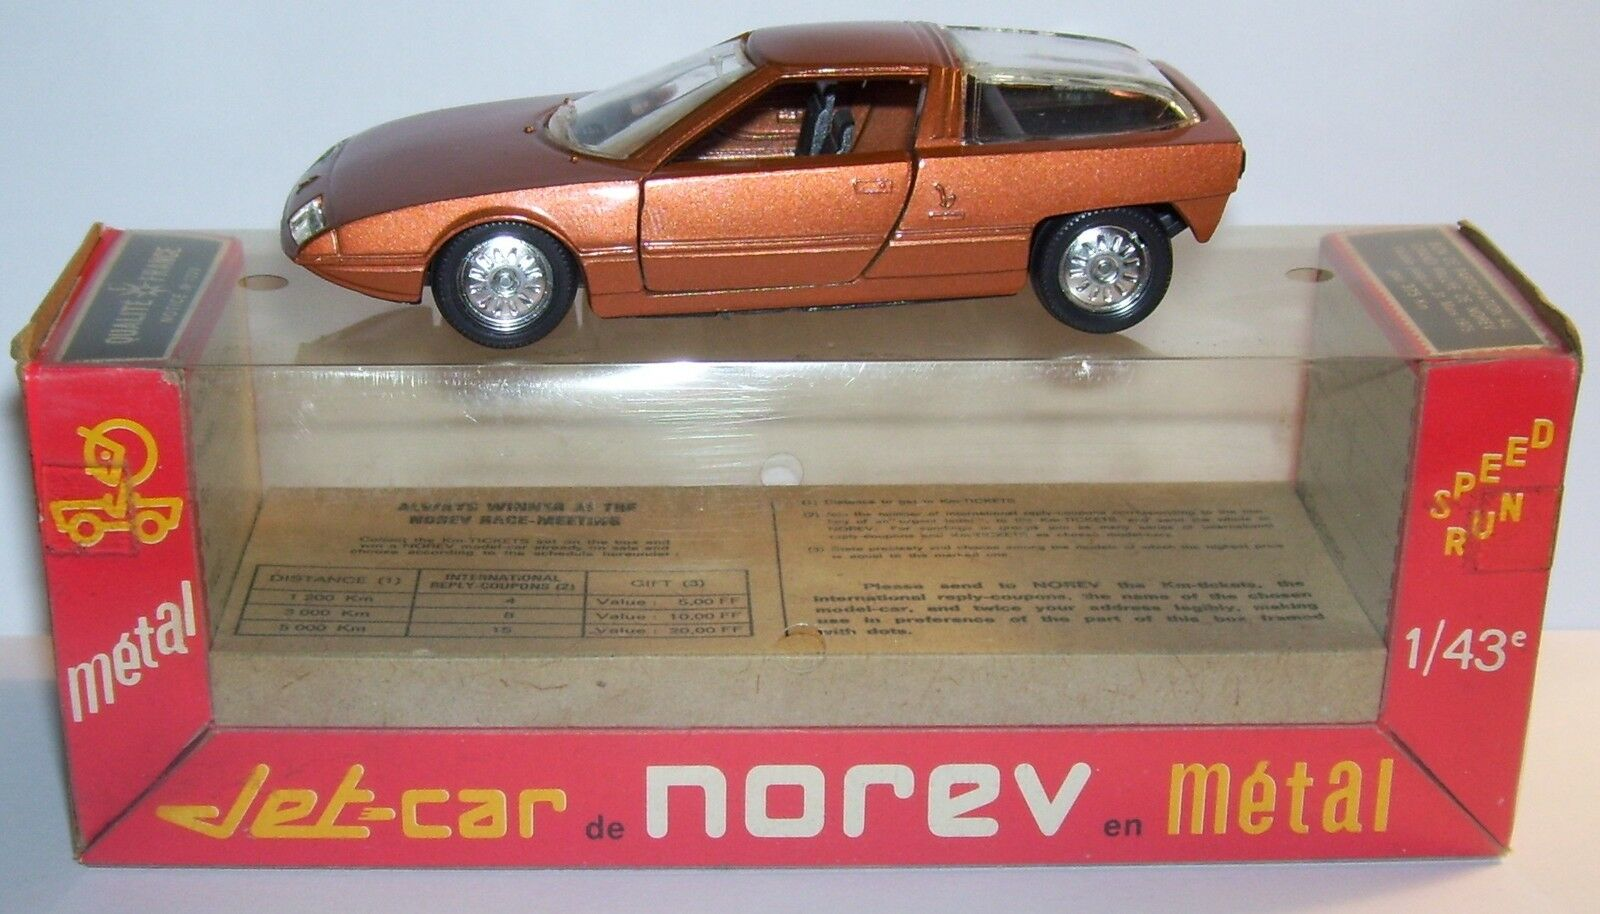 Norev jet car metal made france citroen gs camargue bertone 1972 coupe ref 714a